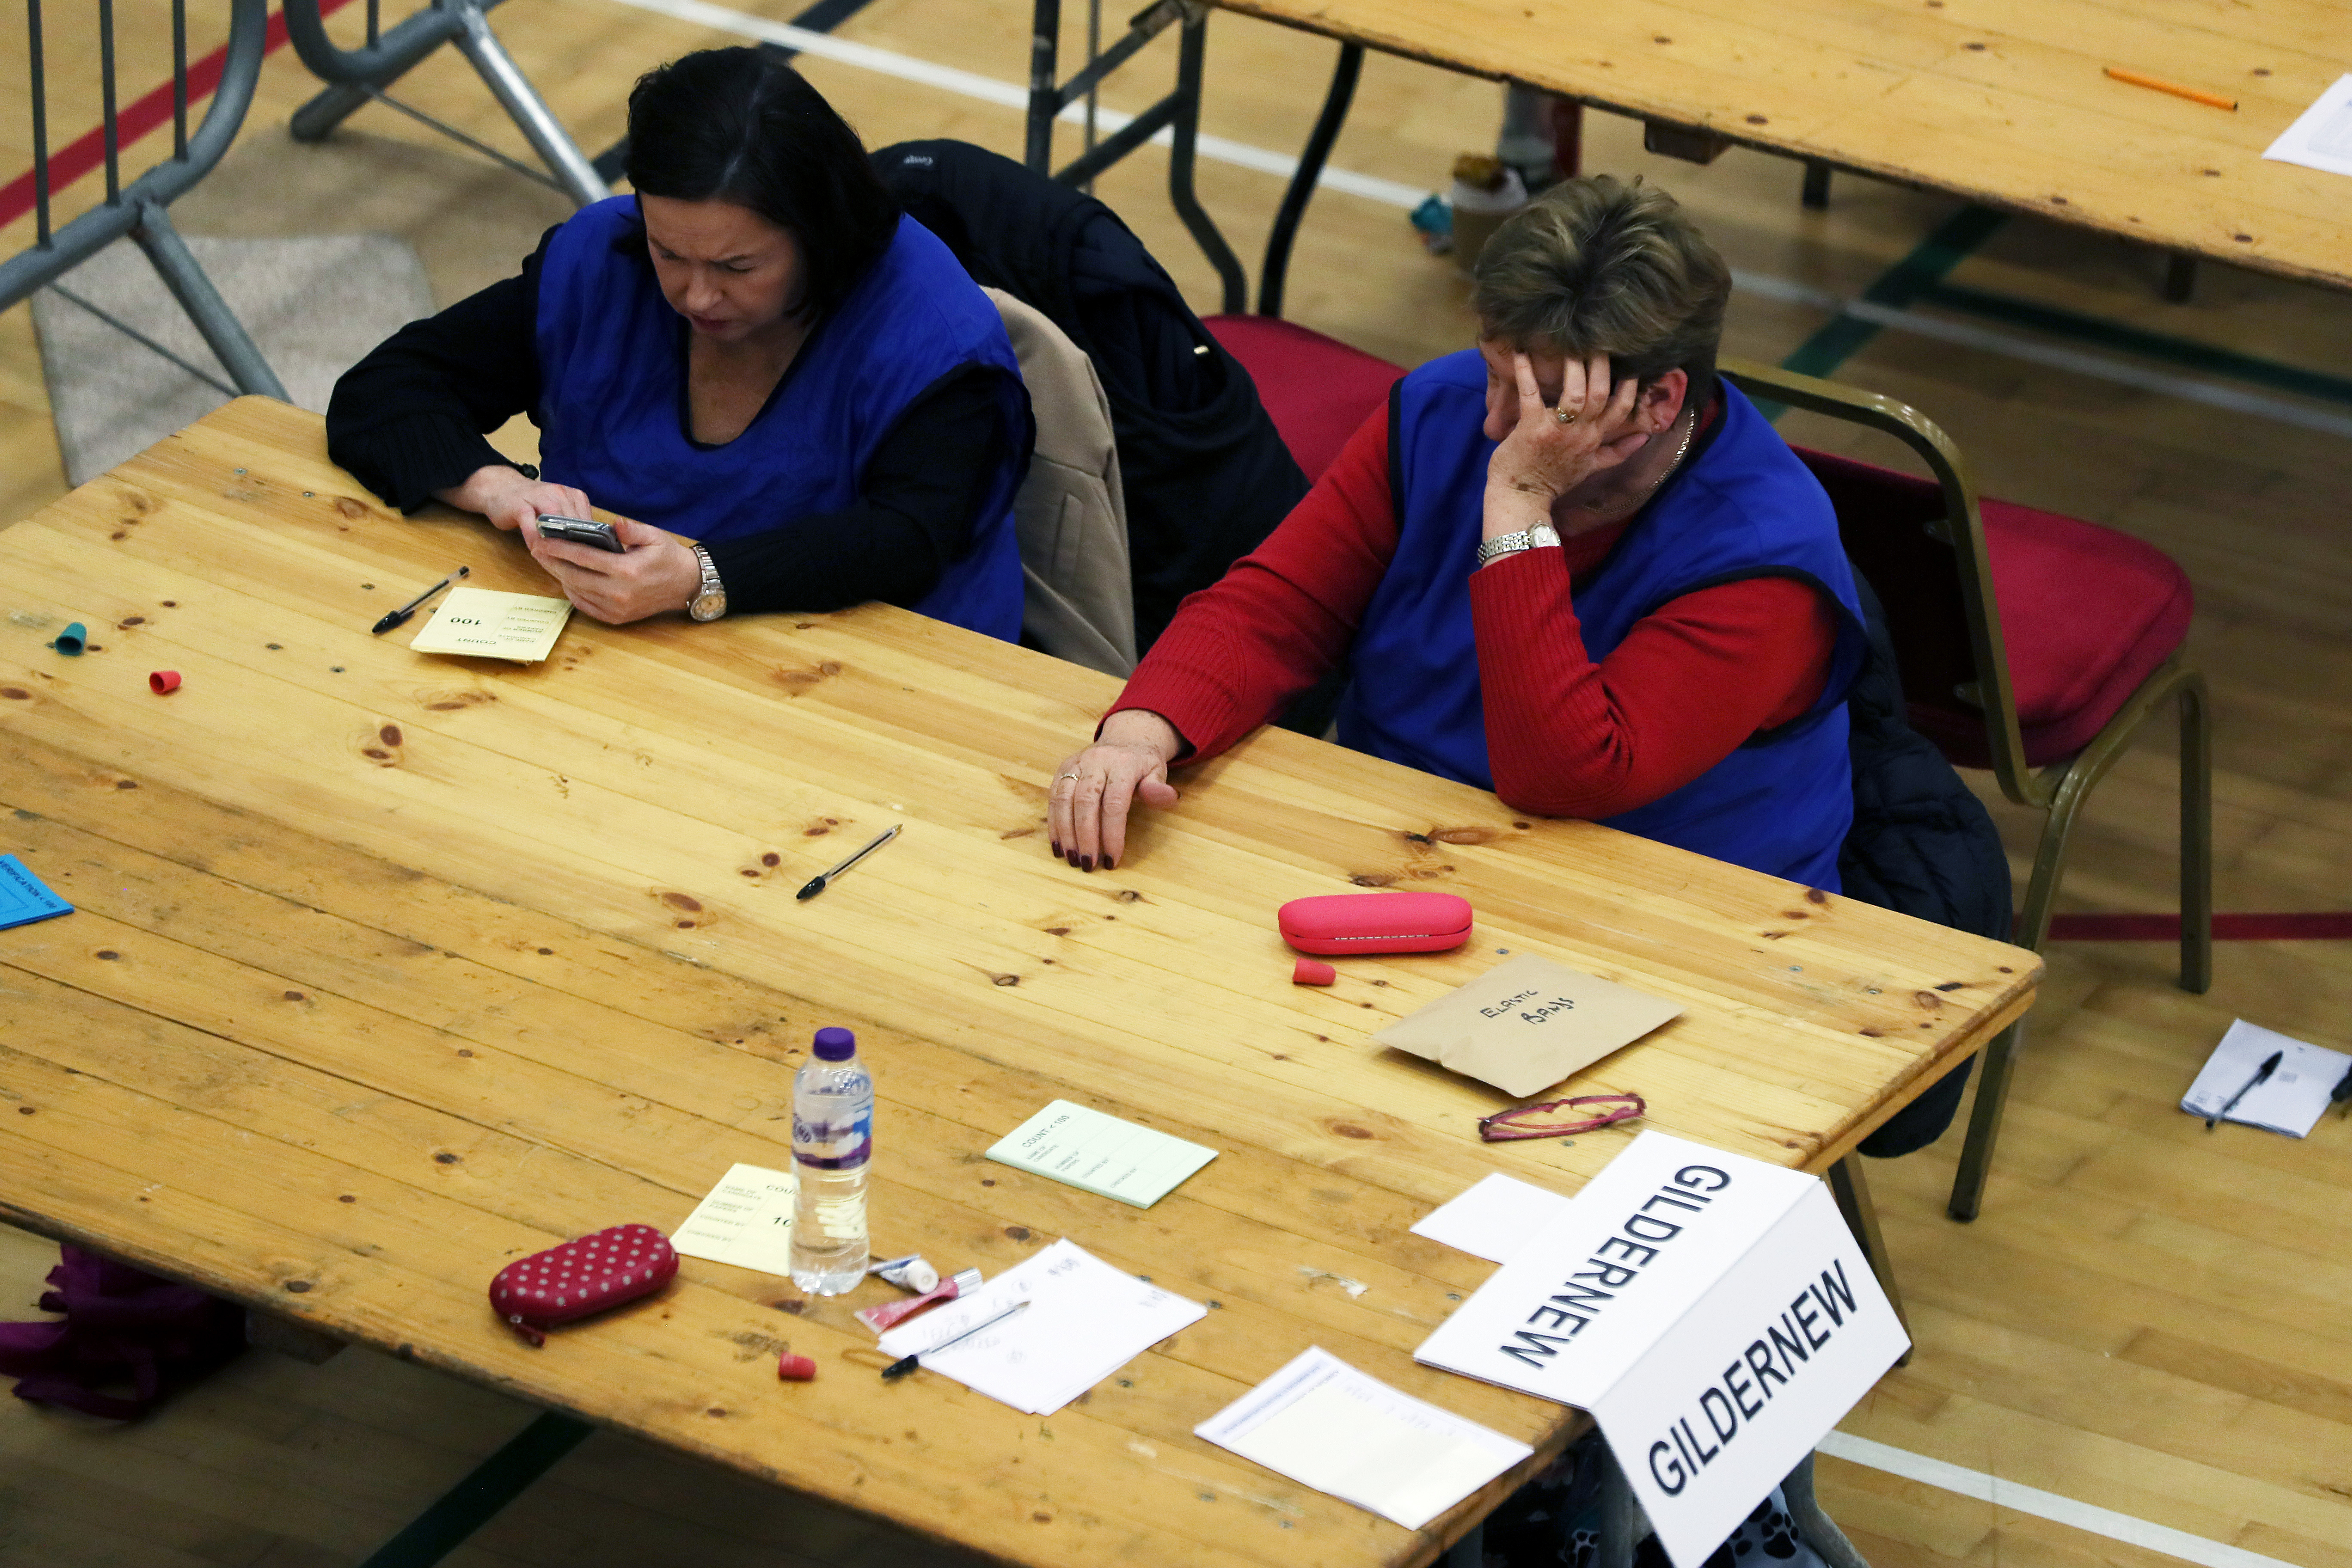 Count staff as a full recount for Fermanagh/South Tyrone at was announced at the Leisure Centre, in Omagh, Northern Ireland, as counting continues in the 2019 General Election.